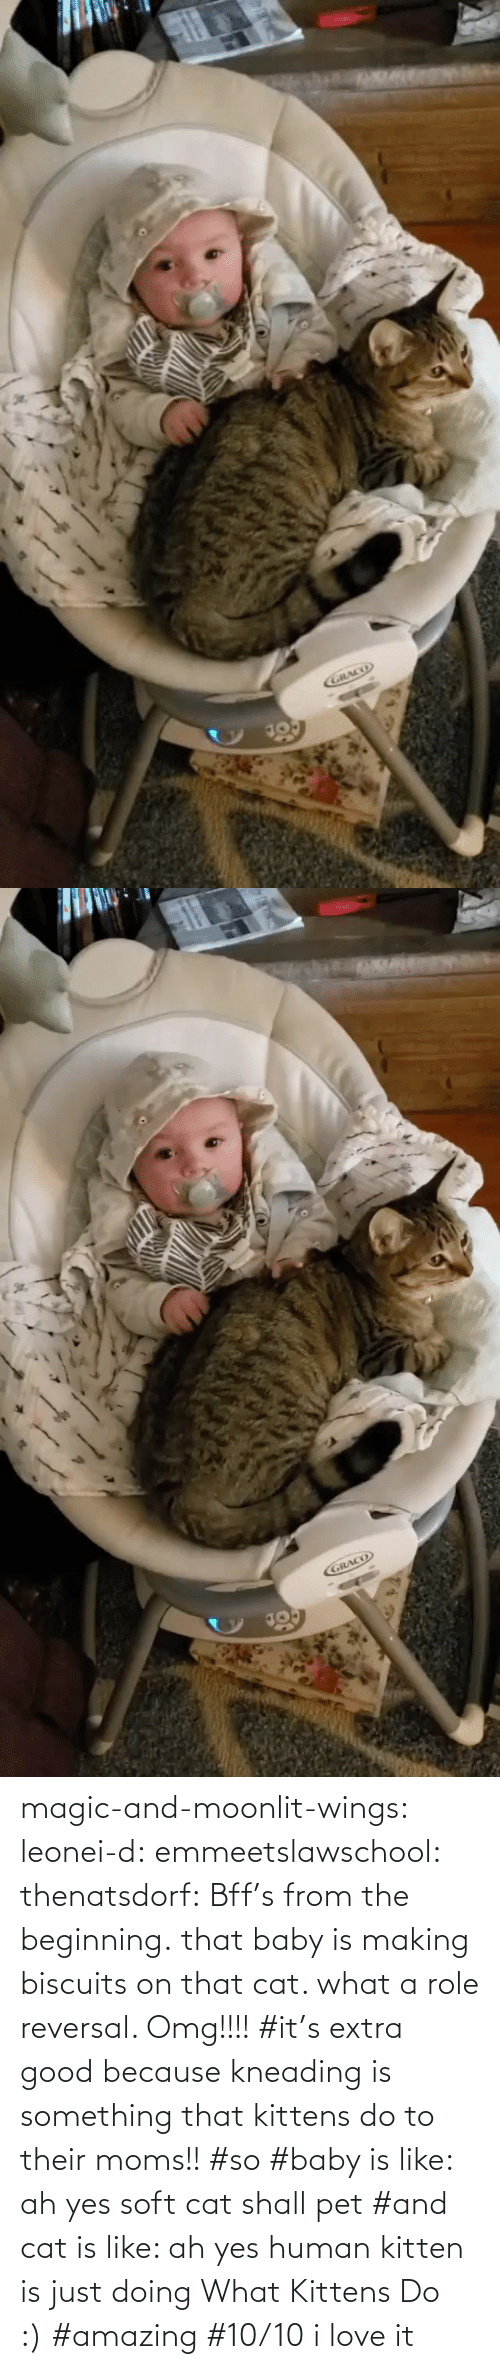 like: magic-and-moonlit-wings: leonei-d:  emmeetslawschool:  thenatsdorf: Bff's from the beginning. that baby is making biscuits on that cat. what a role reversal.    Omg!!!!     #it's extra good because kneading is something that kittens do to their moms!! #so #baby is like: ah yes soft cat shall pet #and cat is like: ah yes human kitten is just doing What Kittens Do :) #amazing #10/10 i love it